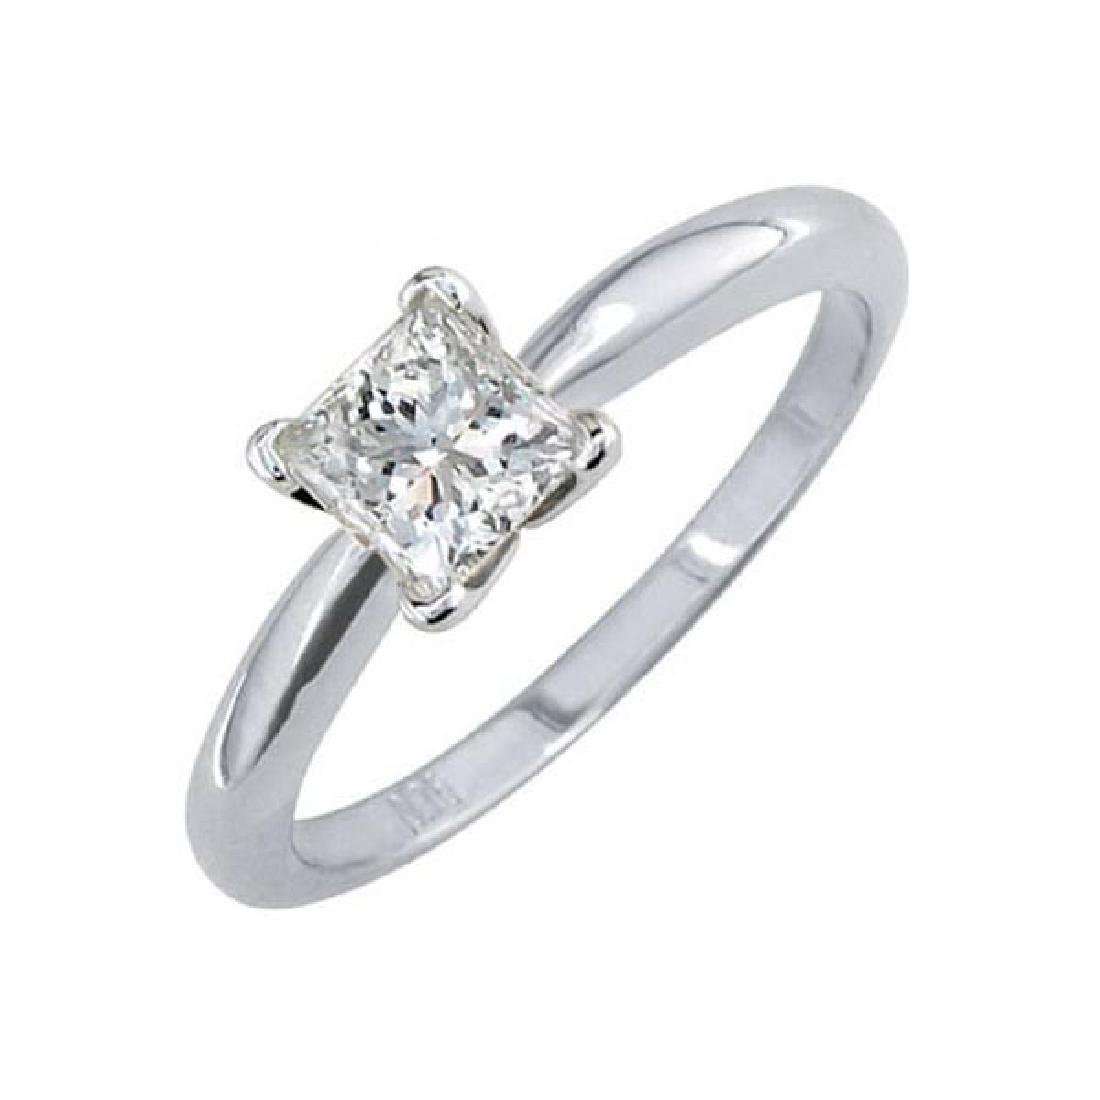 Certified 1 CTW Princess Diamond Solitaire 14k Ring E/S